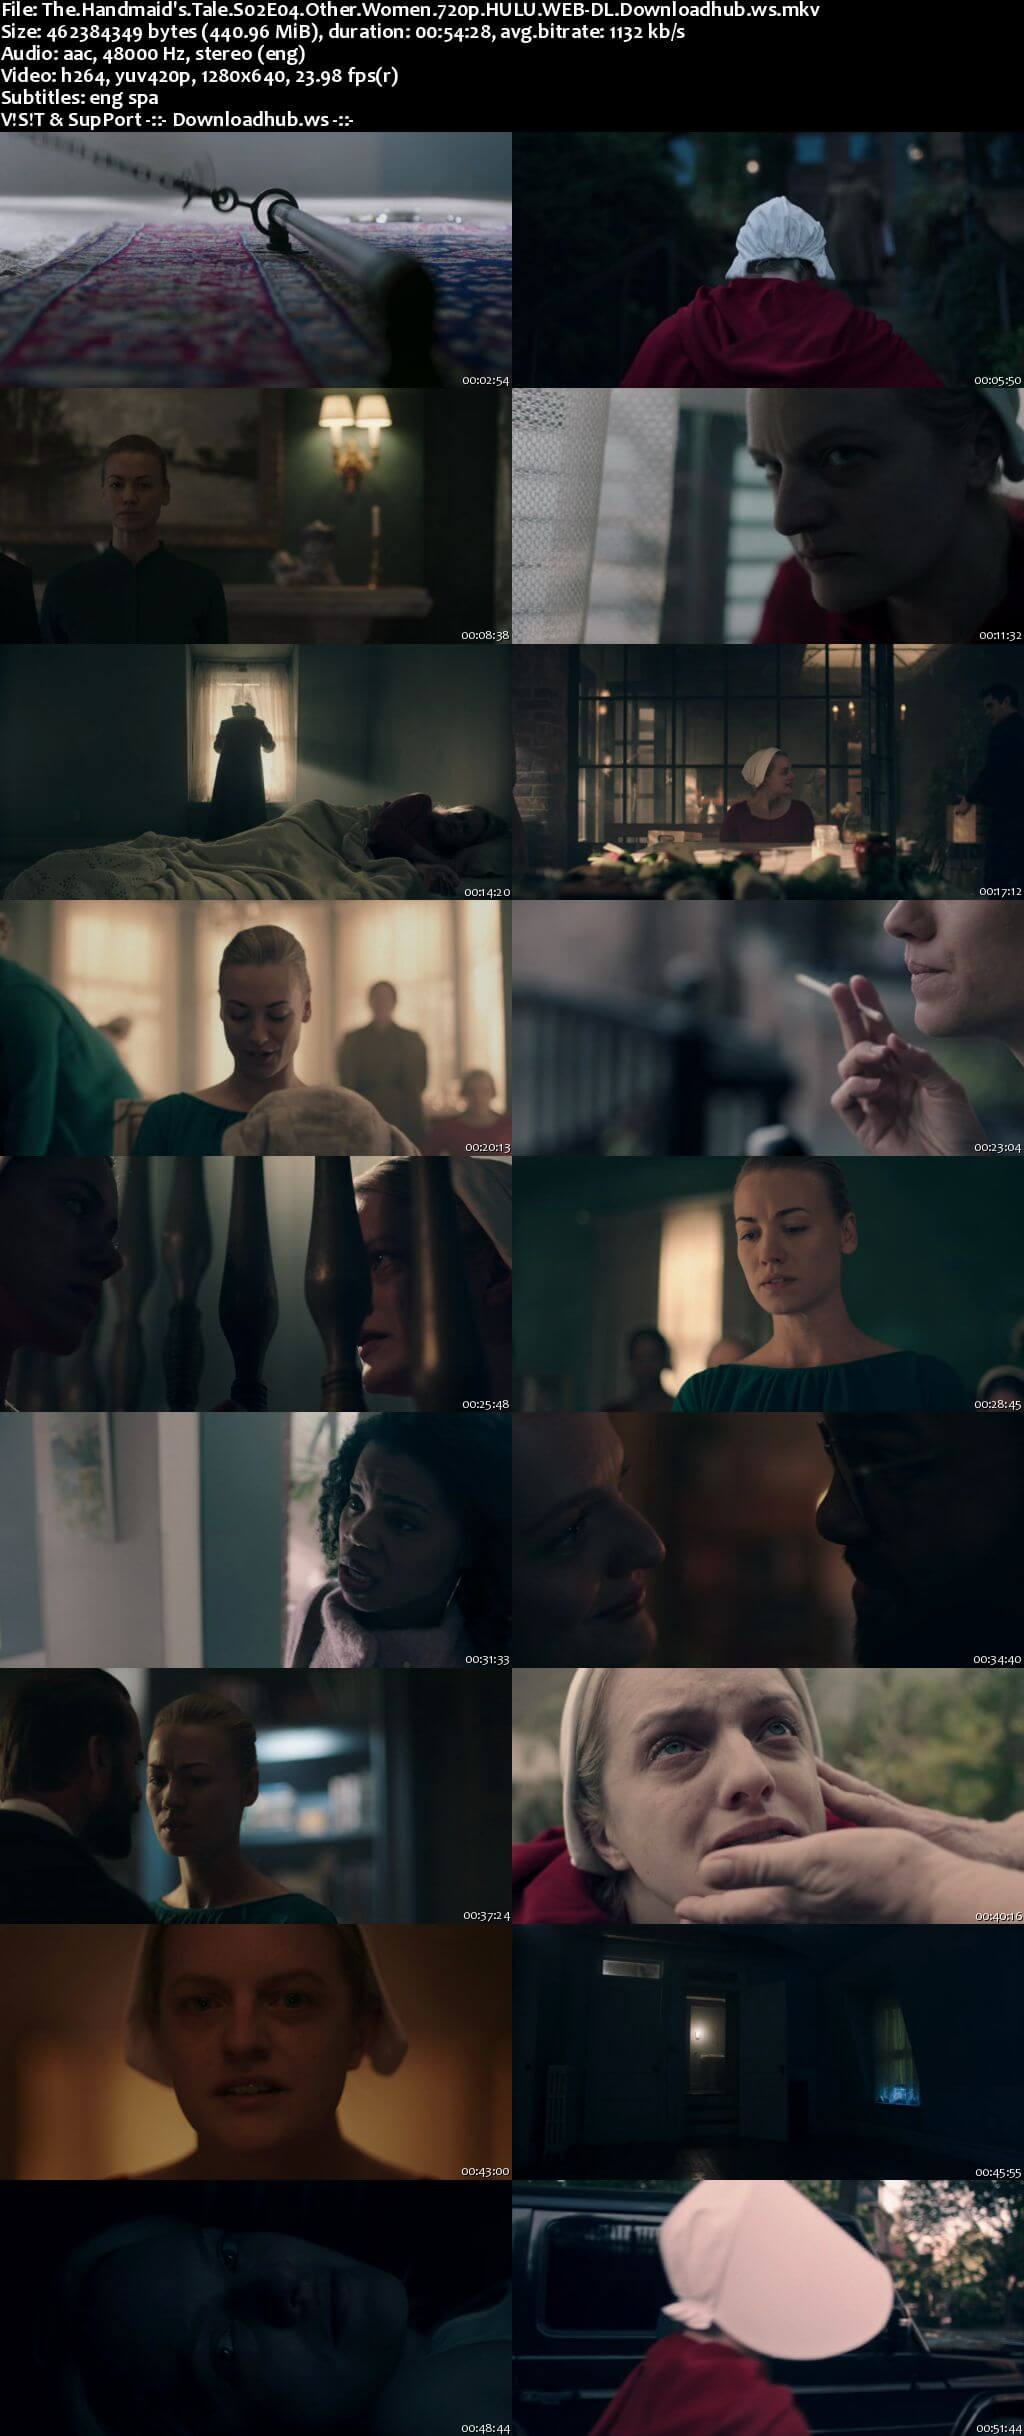 The Handmaids Tale S02E04 440MB HULU WEB-DL 720p x264 ESubs